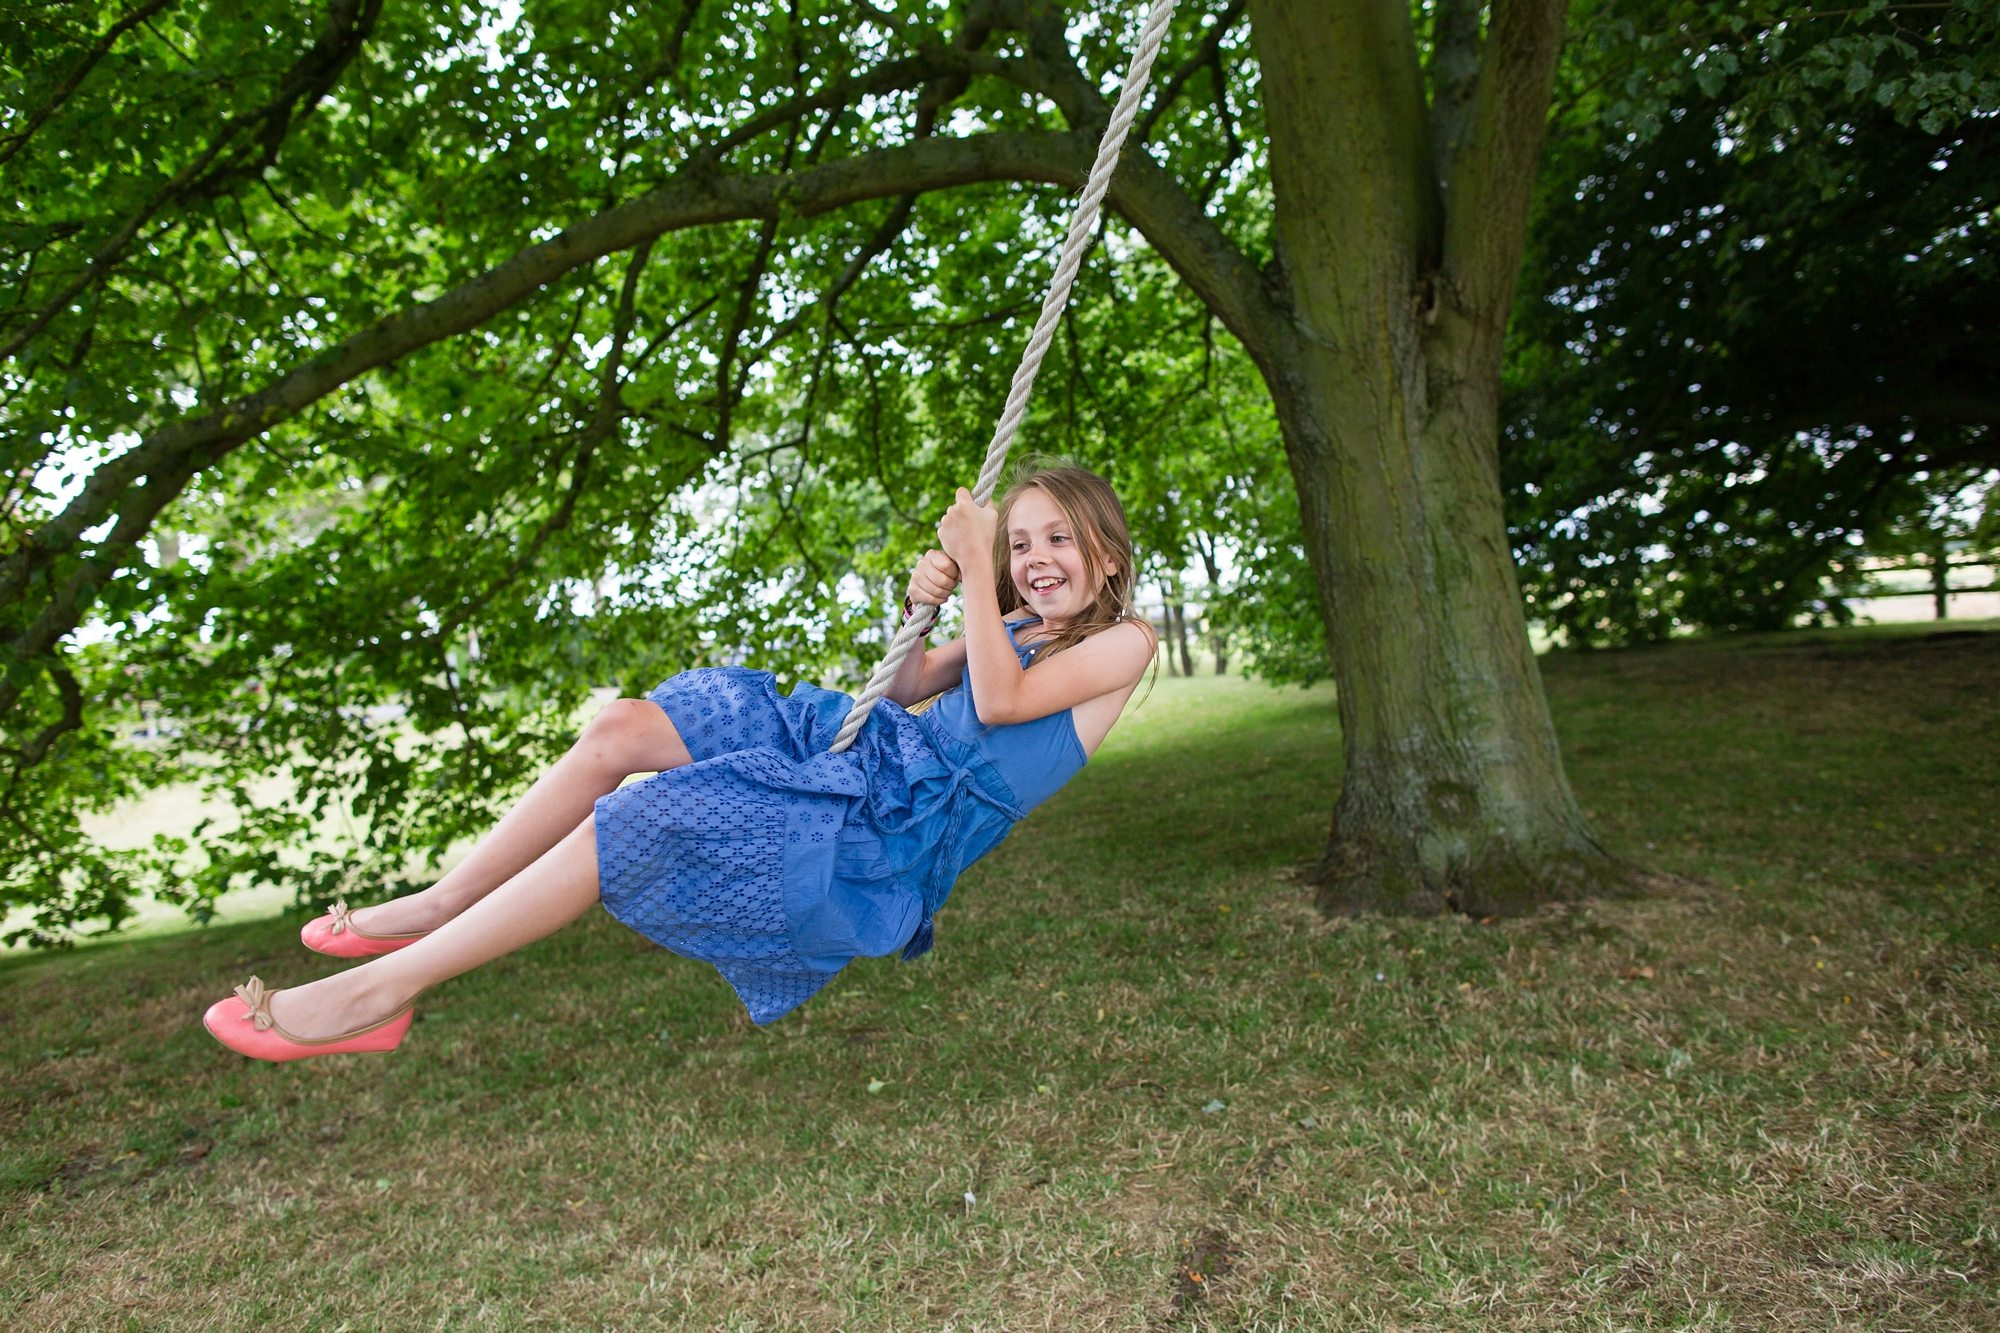 wedding guest little girl swinging on rope swing under tree